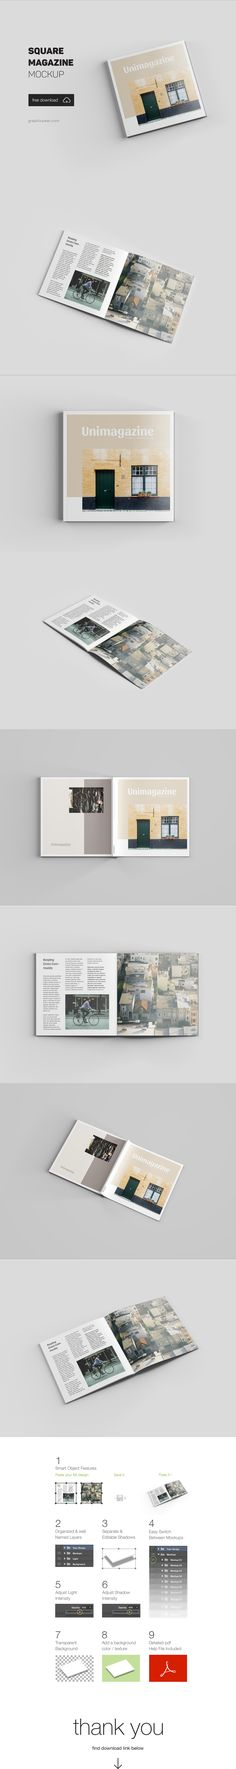 Square Magazine Mockup - Free PSD on Behance